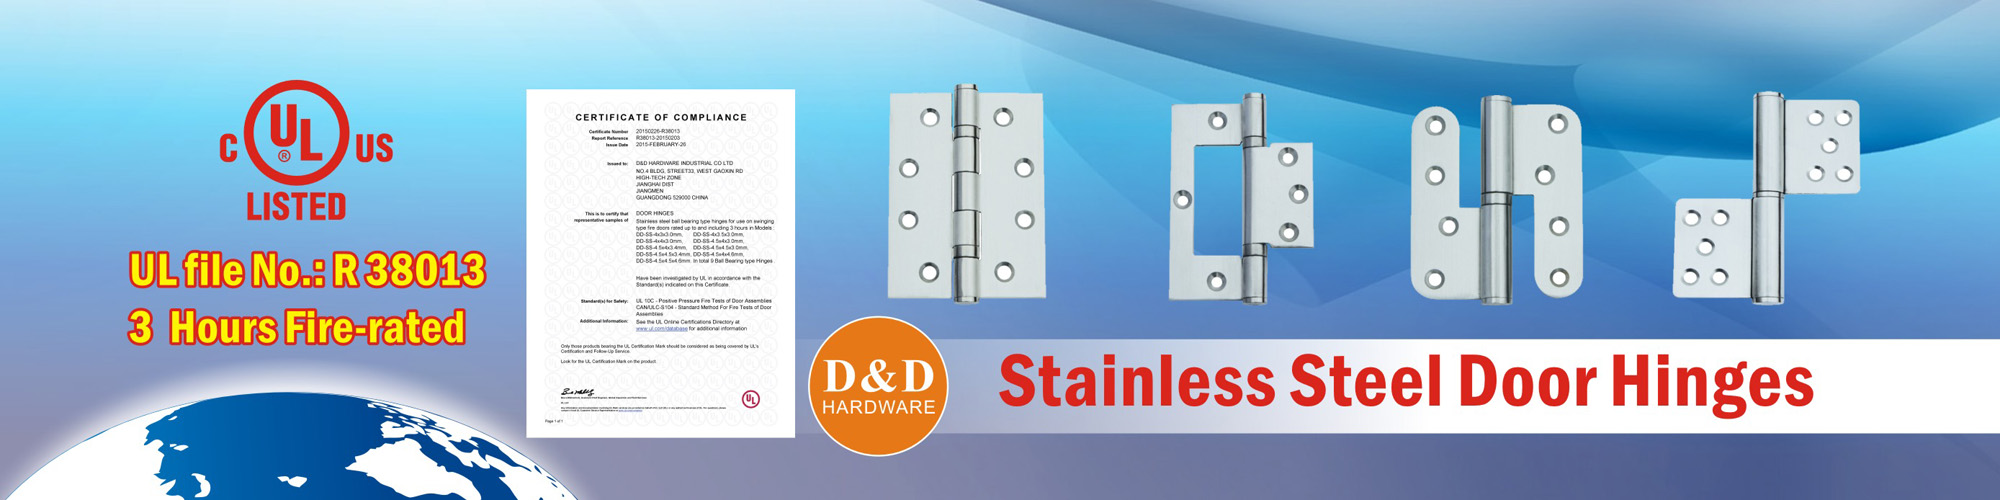 Stainless Steel Door Hinges-D&D Hardware supplier